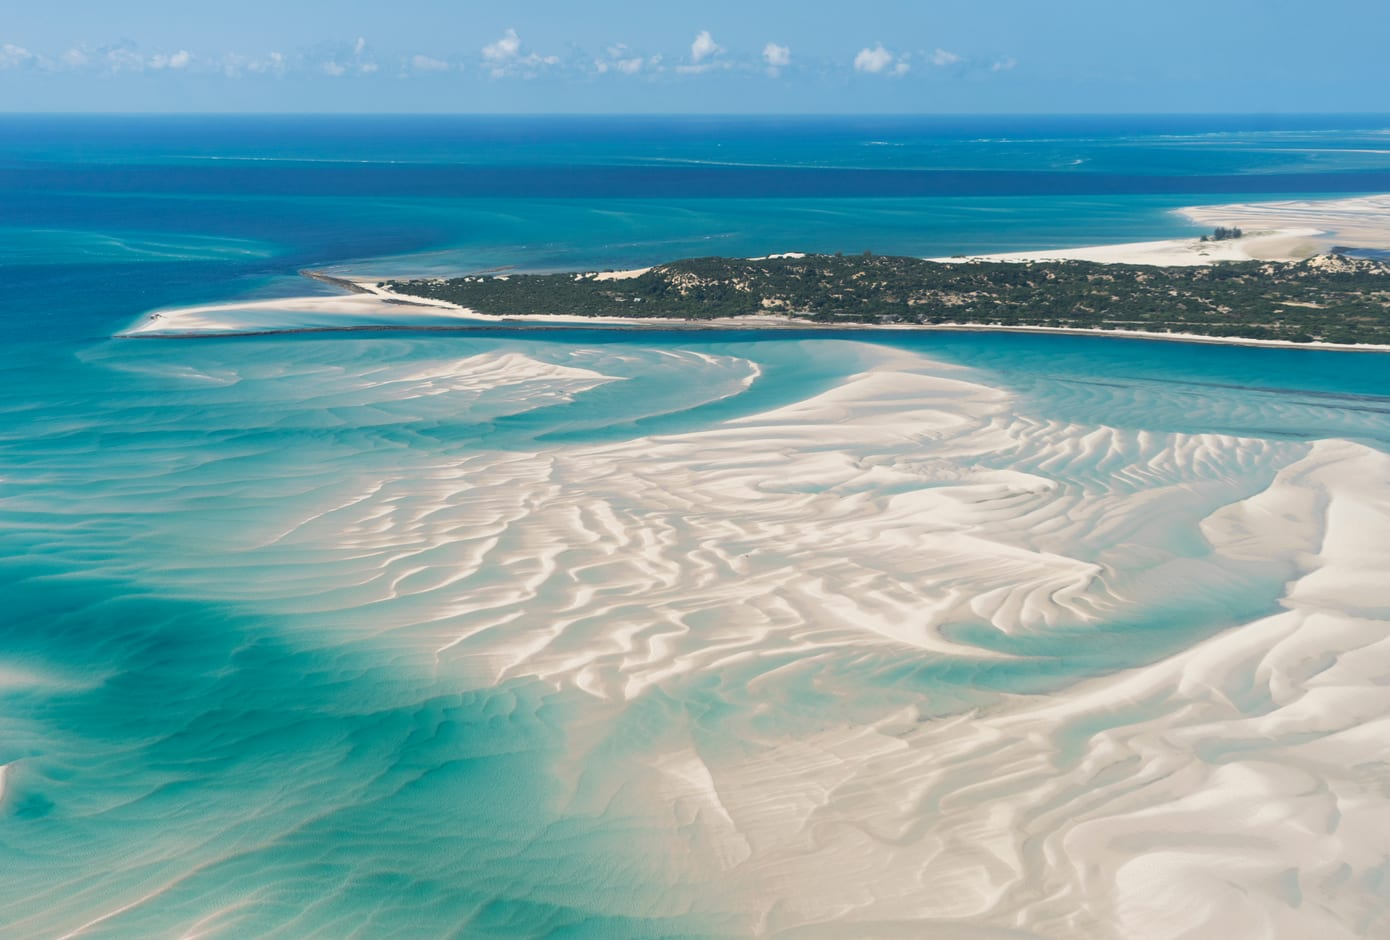 Aerial view of a paradisiac island in Vilankulo, Mozambique, Africa.